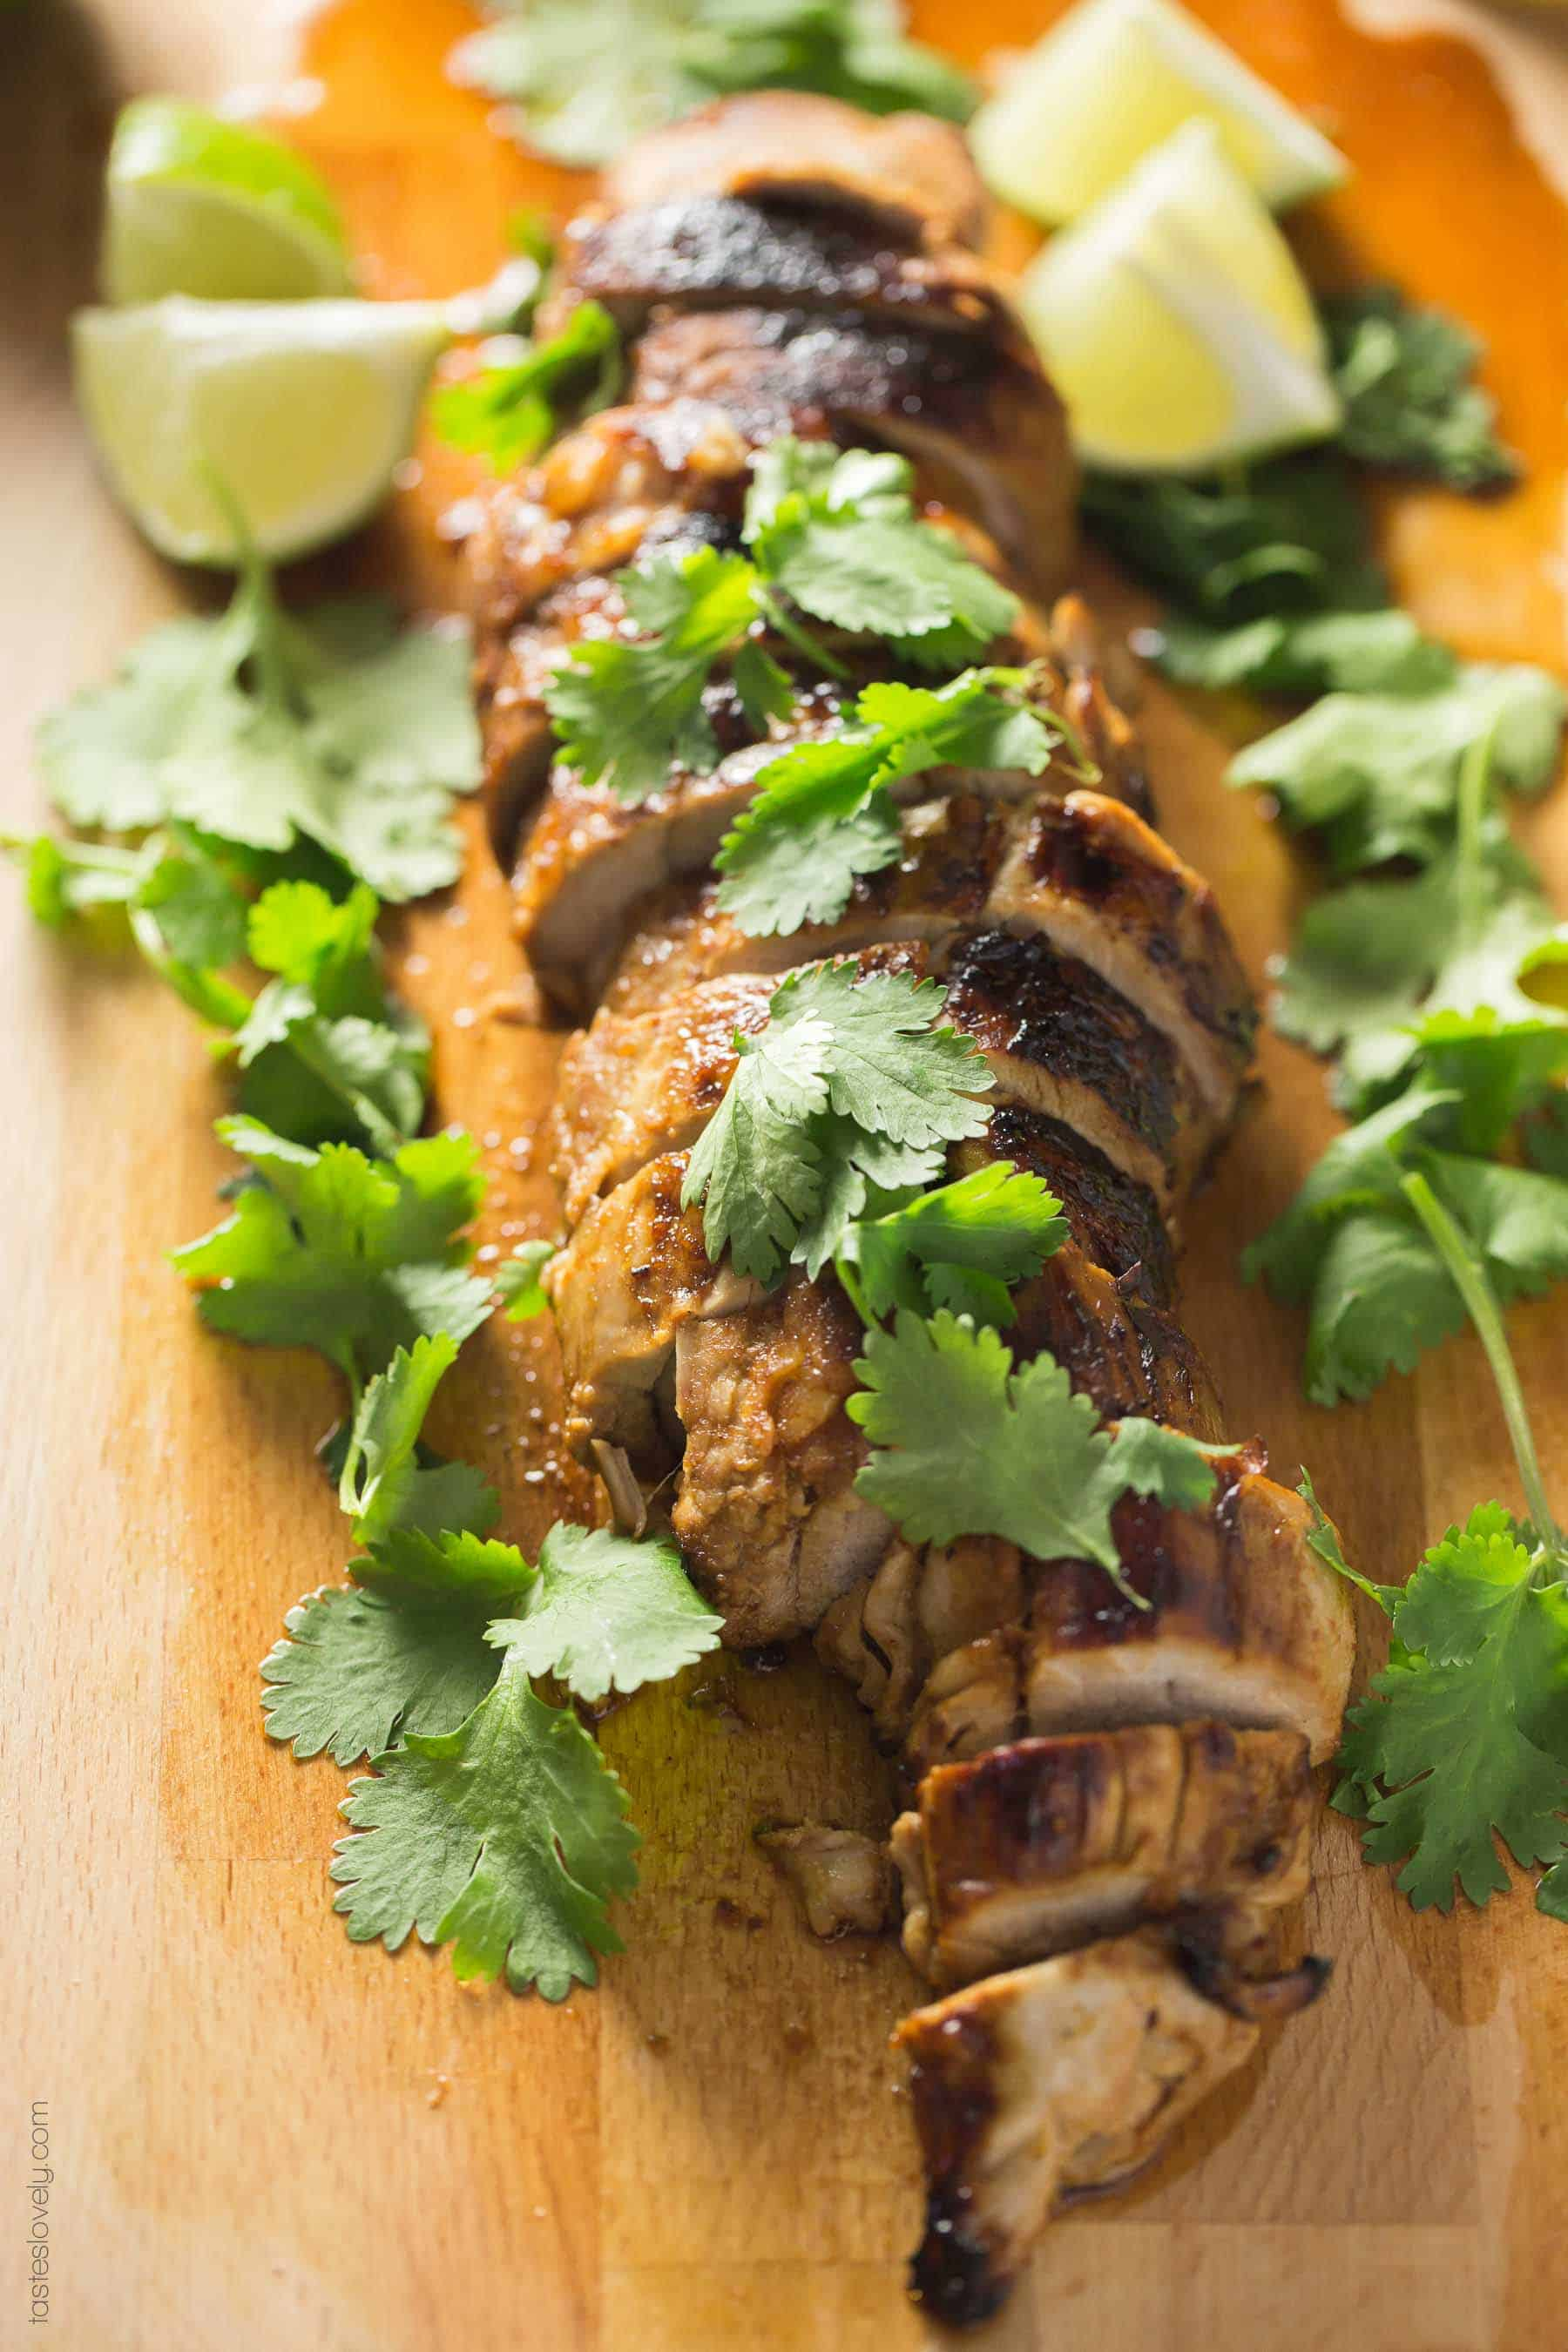 Paleo Chipotle Honey Lime Pork Tenderloin - quick marinade brings TONS of Mexican flavor to this 30 minute dinner recipe (paleo, gluten free, low carb)